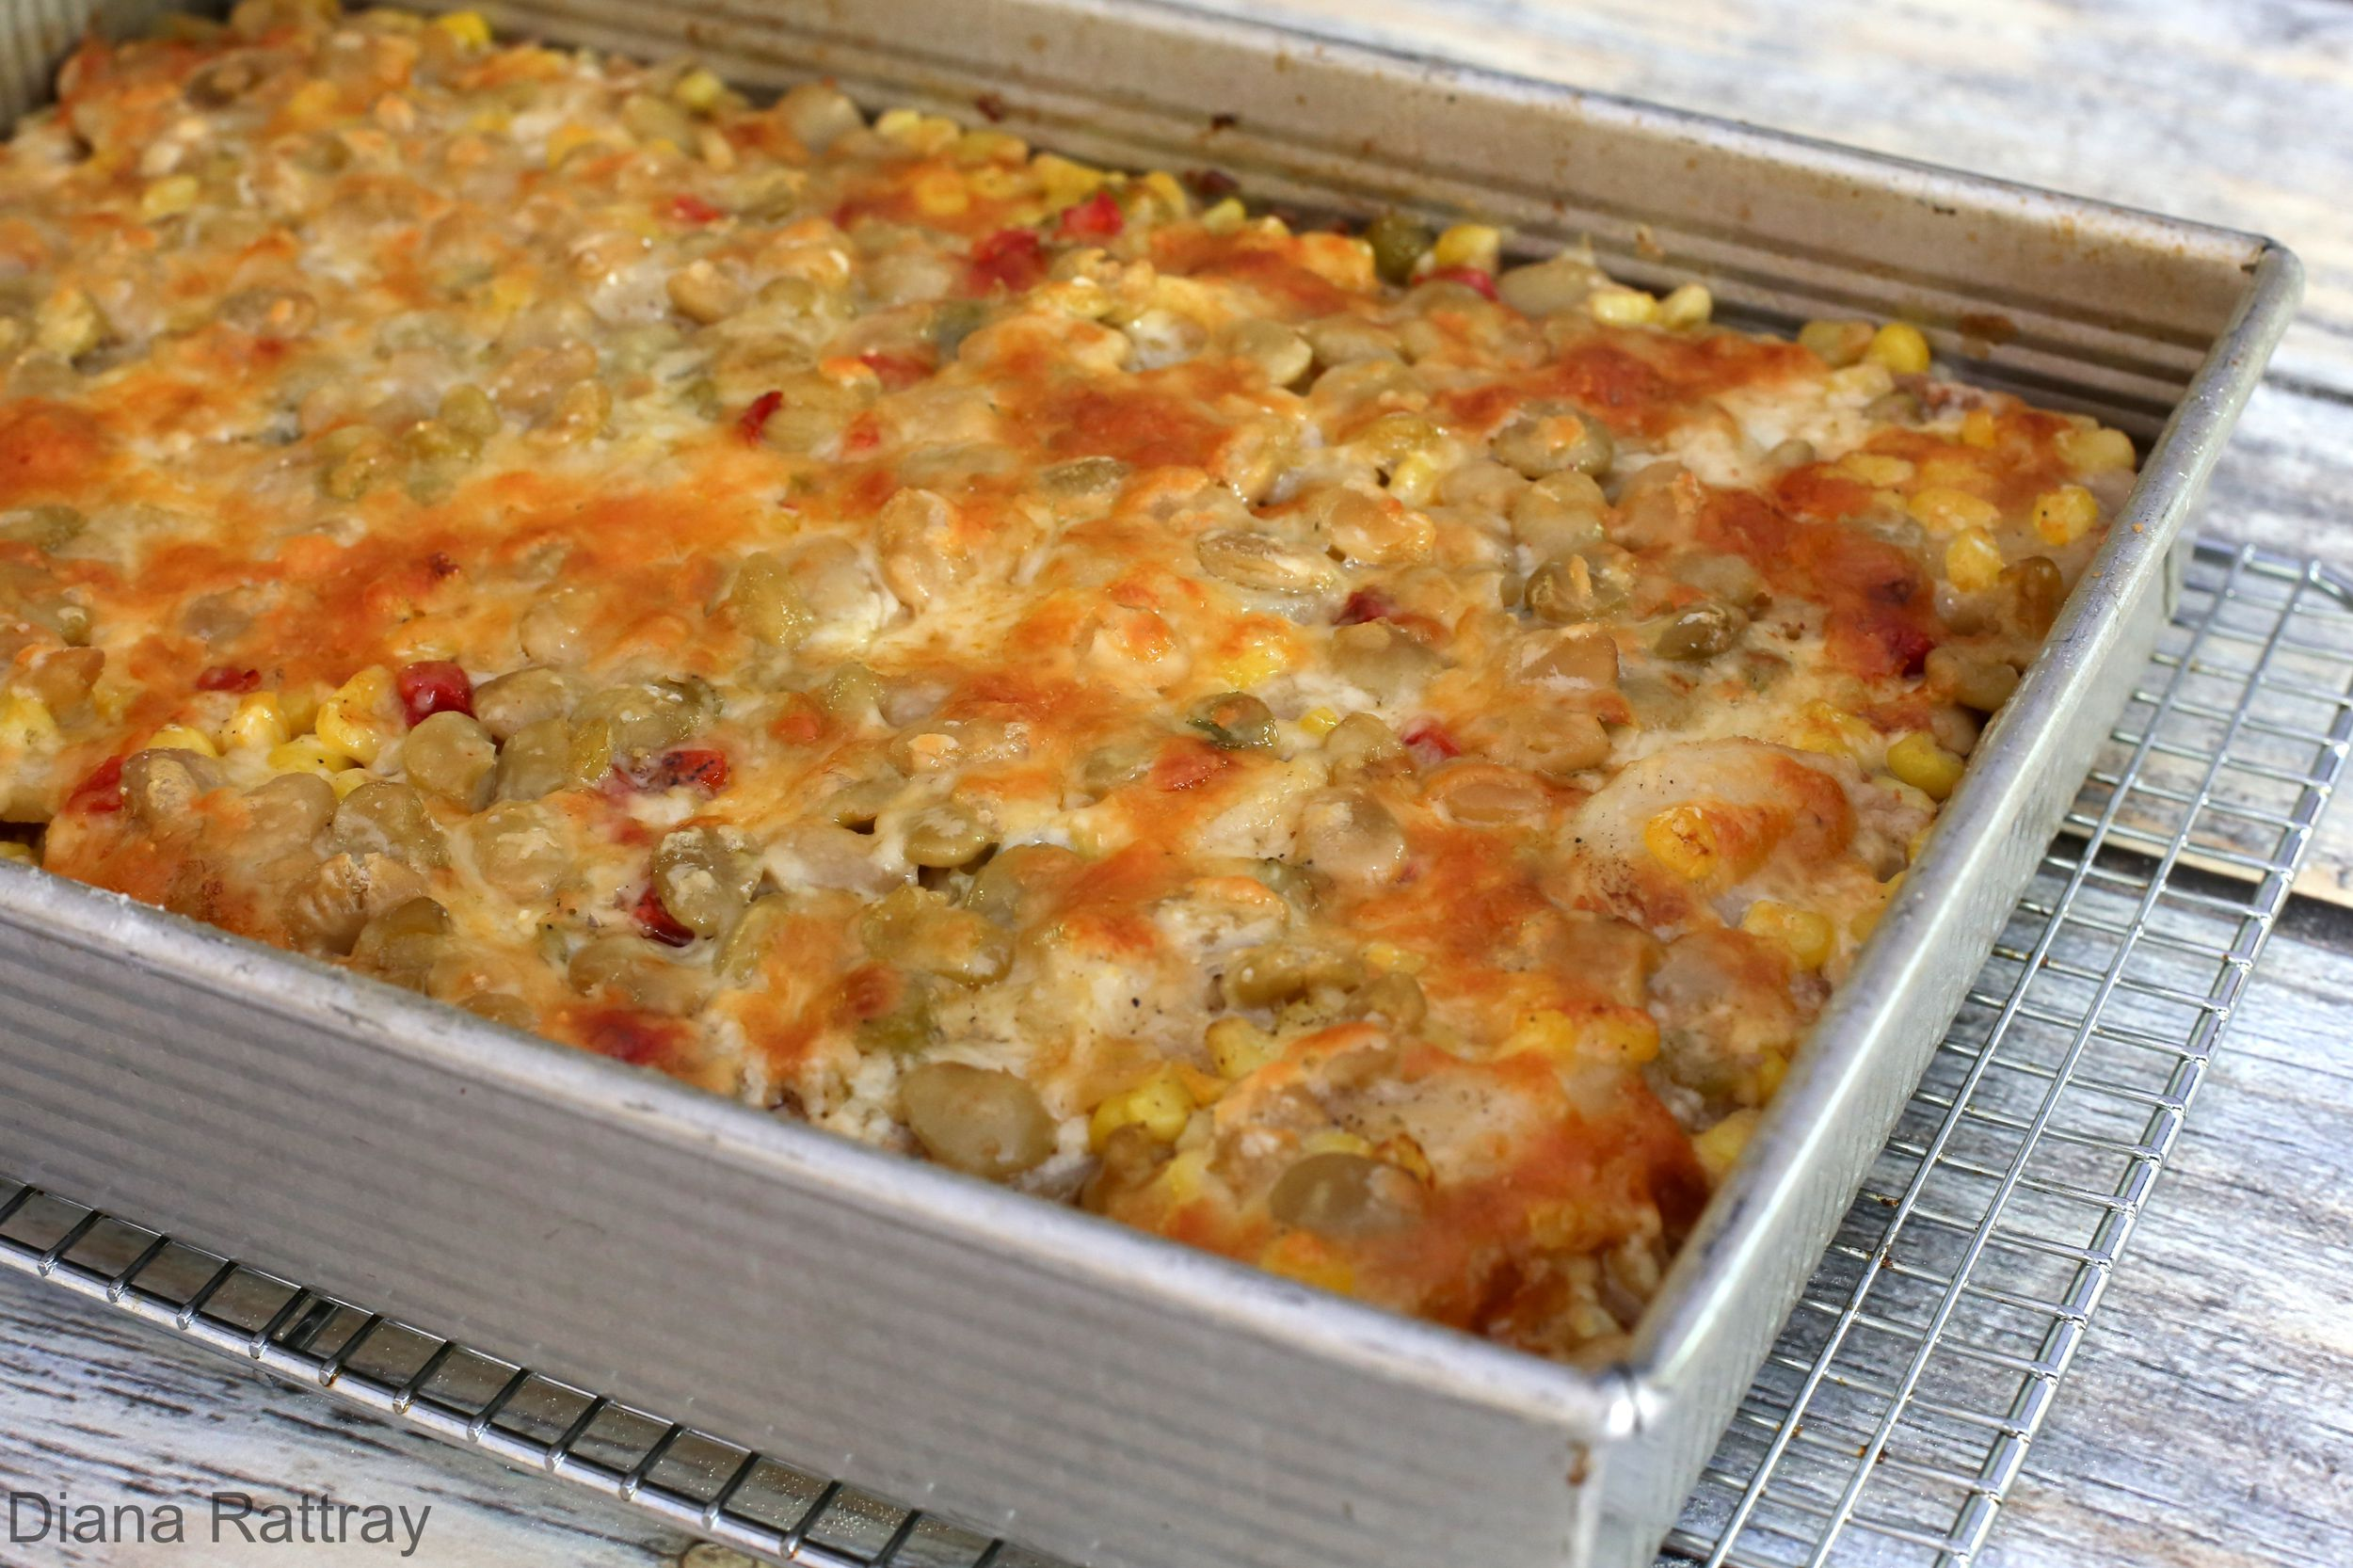 Hearty Hamburger and Potato Casserole